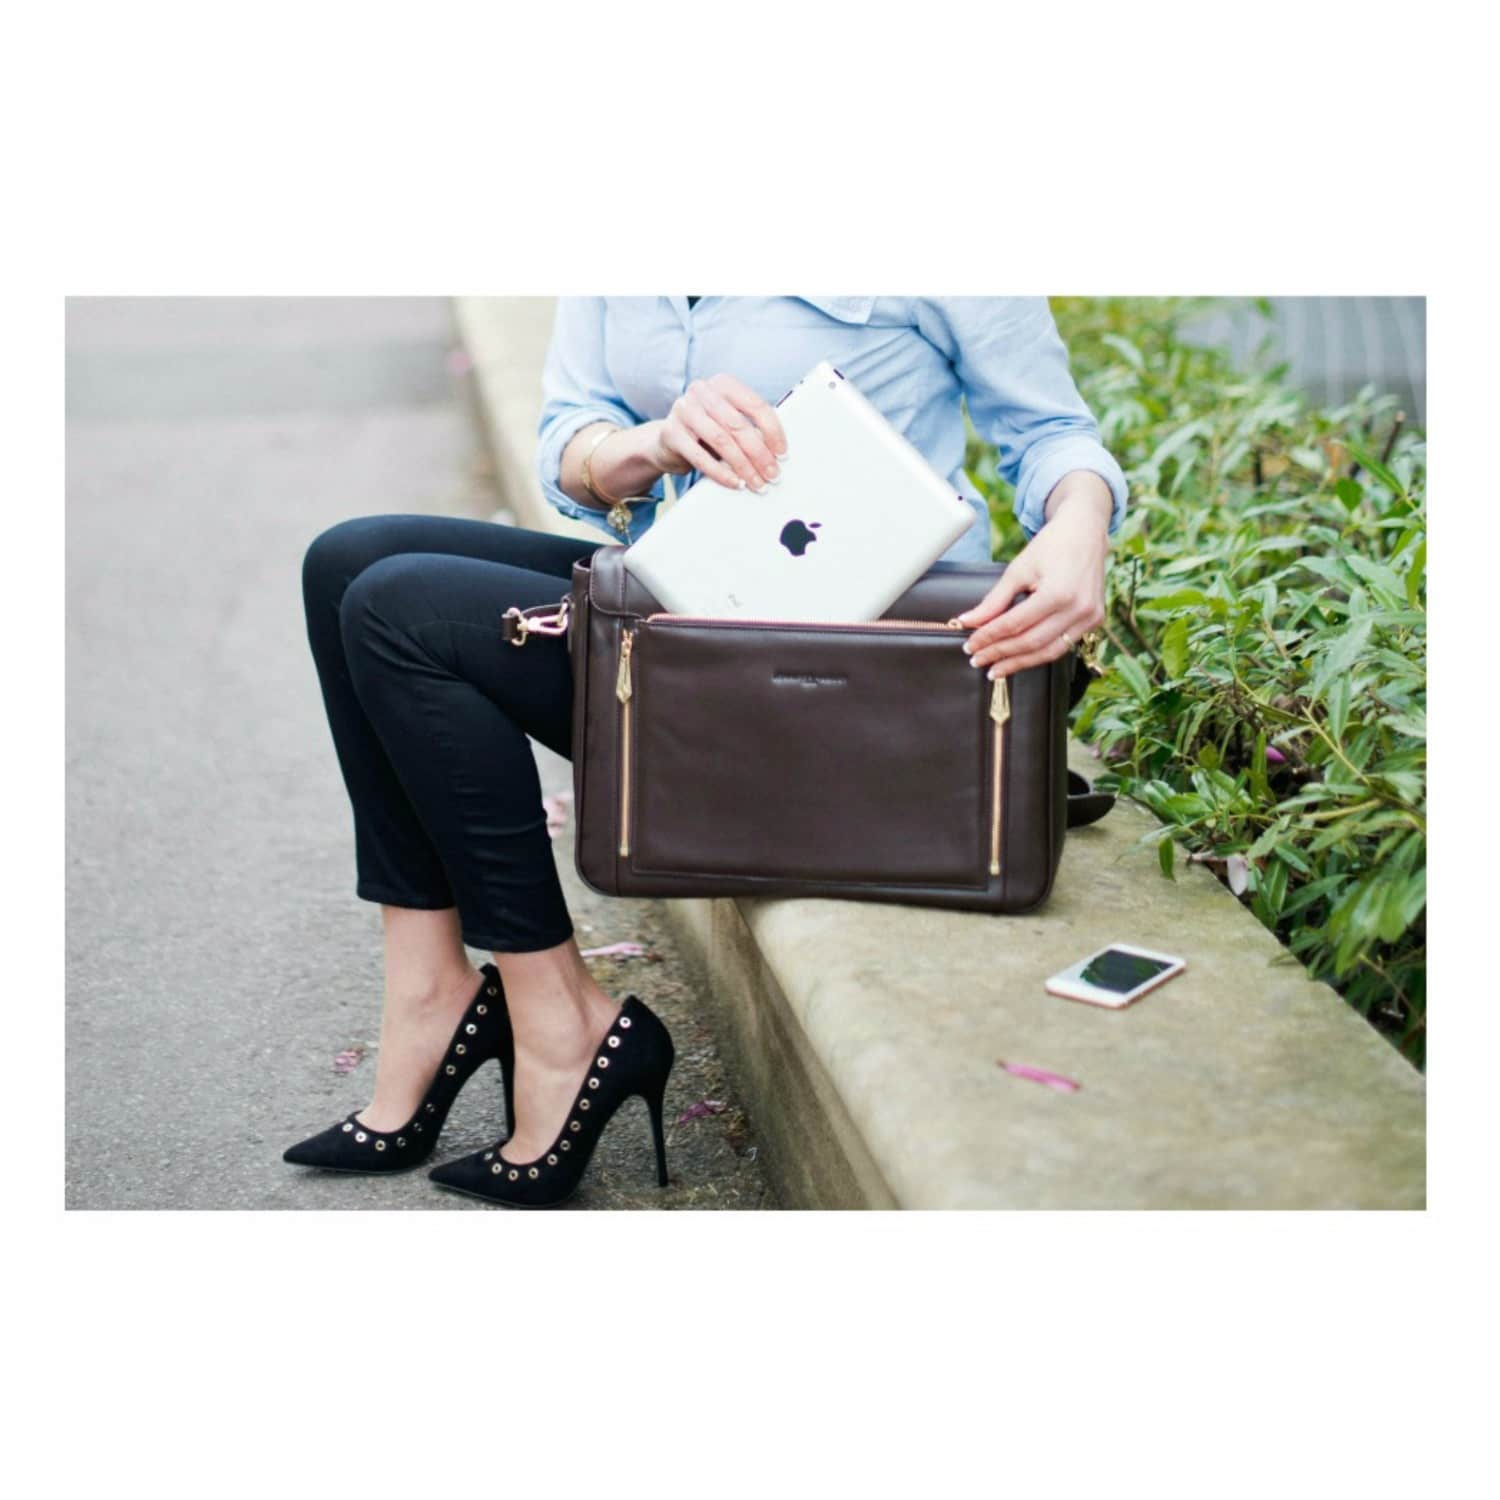 9e257d1d14b Model KT Leather Messenger Bag in Chocolate with Detachable Clutch image